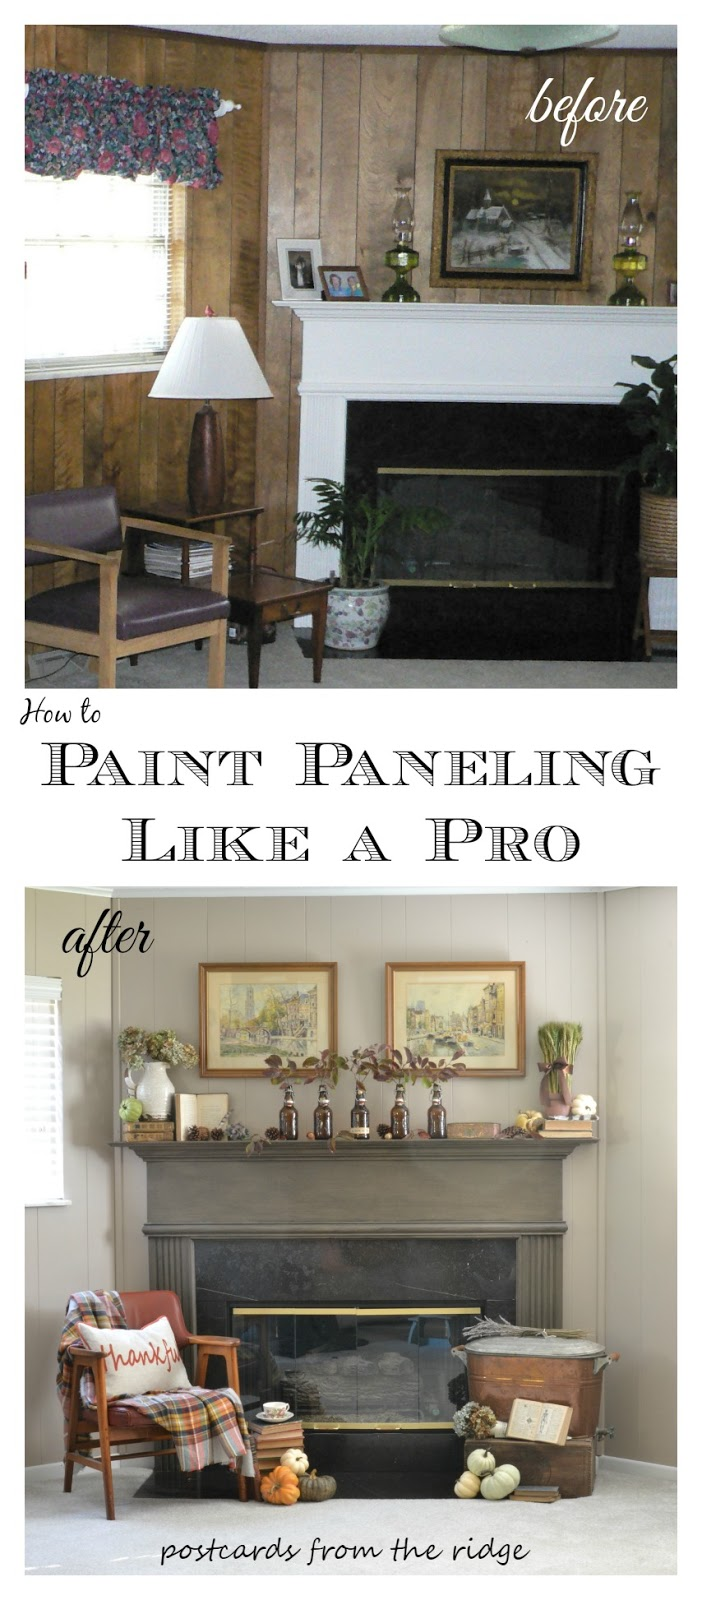 Tutorial: How to Paint Paneling Like a Pro | Postcards from